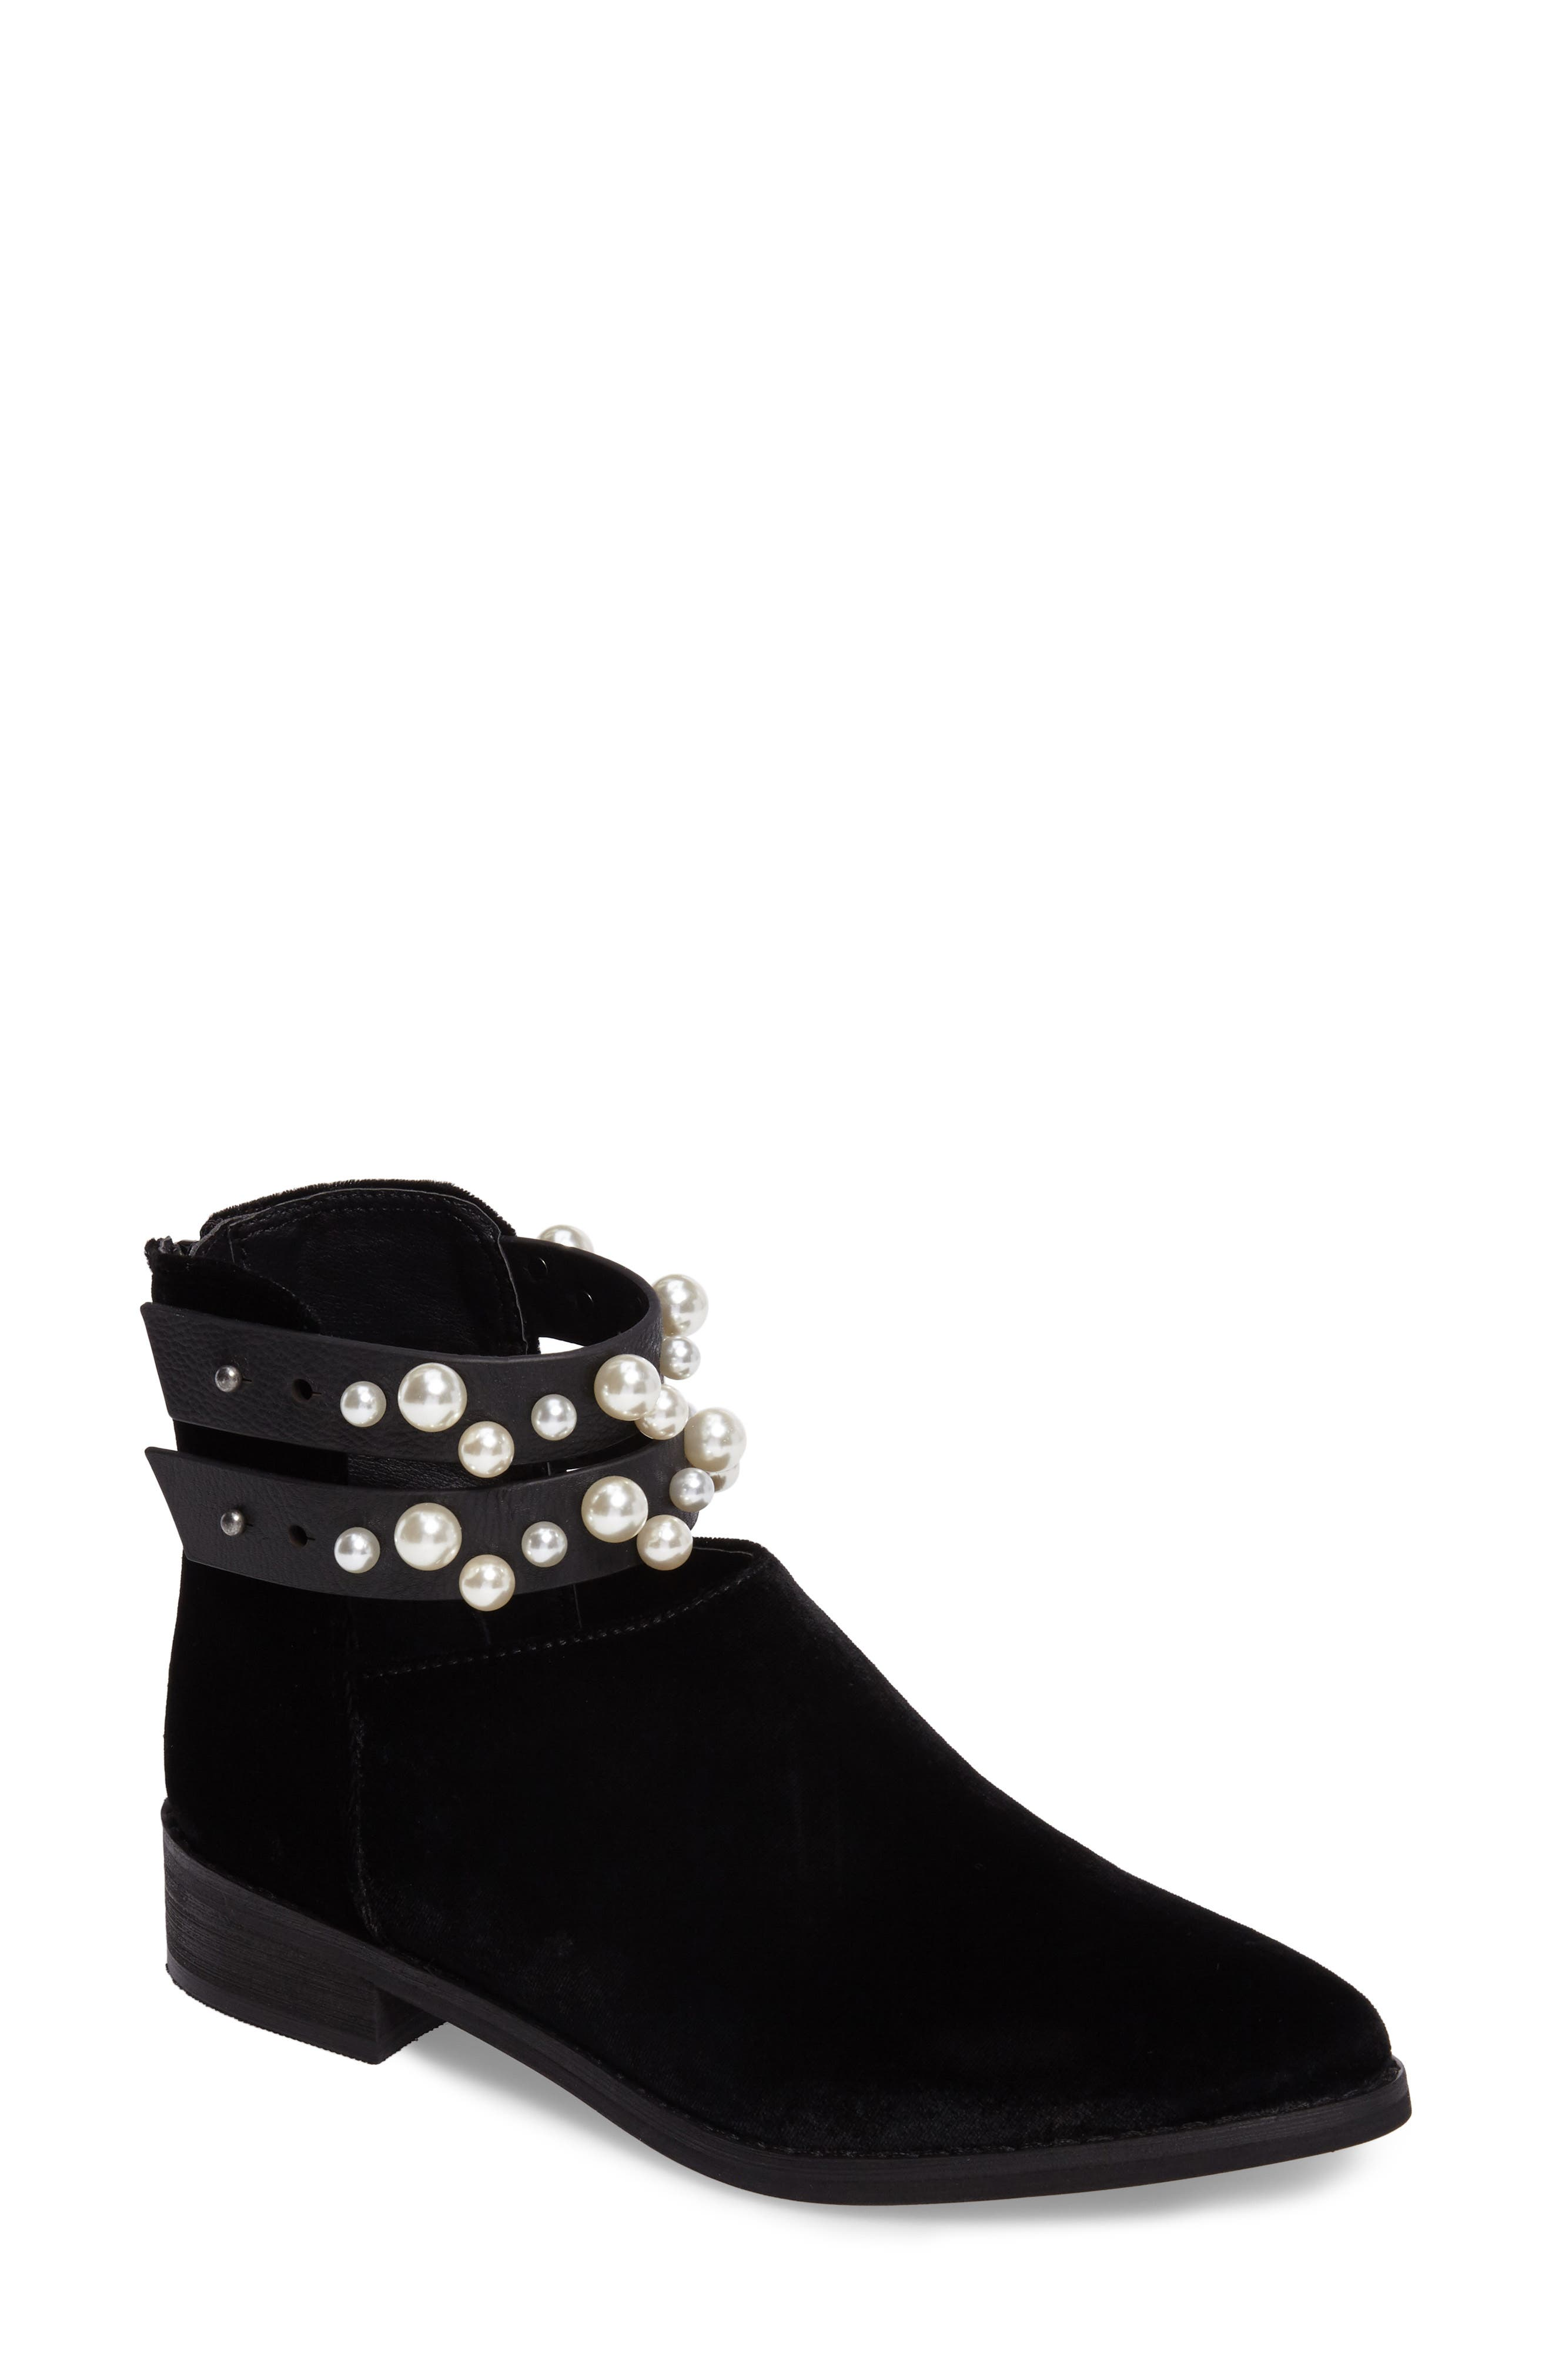 Maisie Embellished Bootie,                             Main thumbnail 1, color,                             001